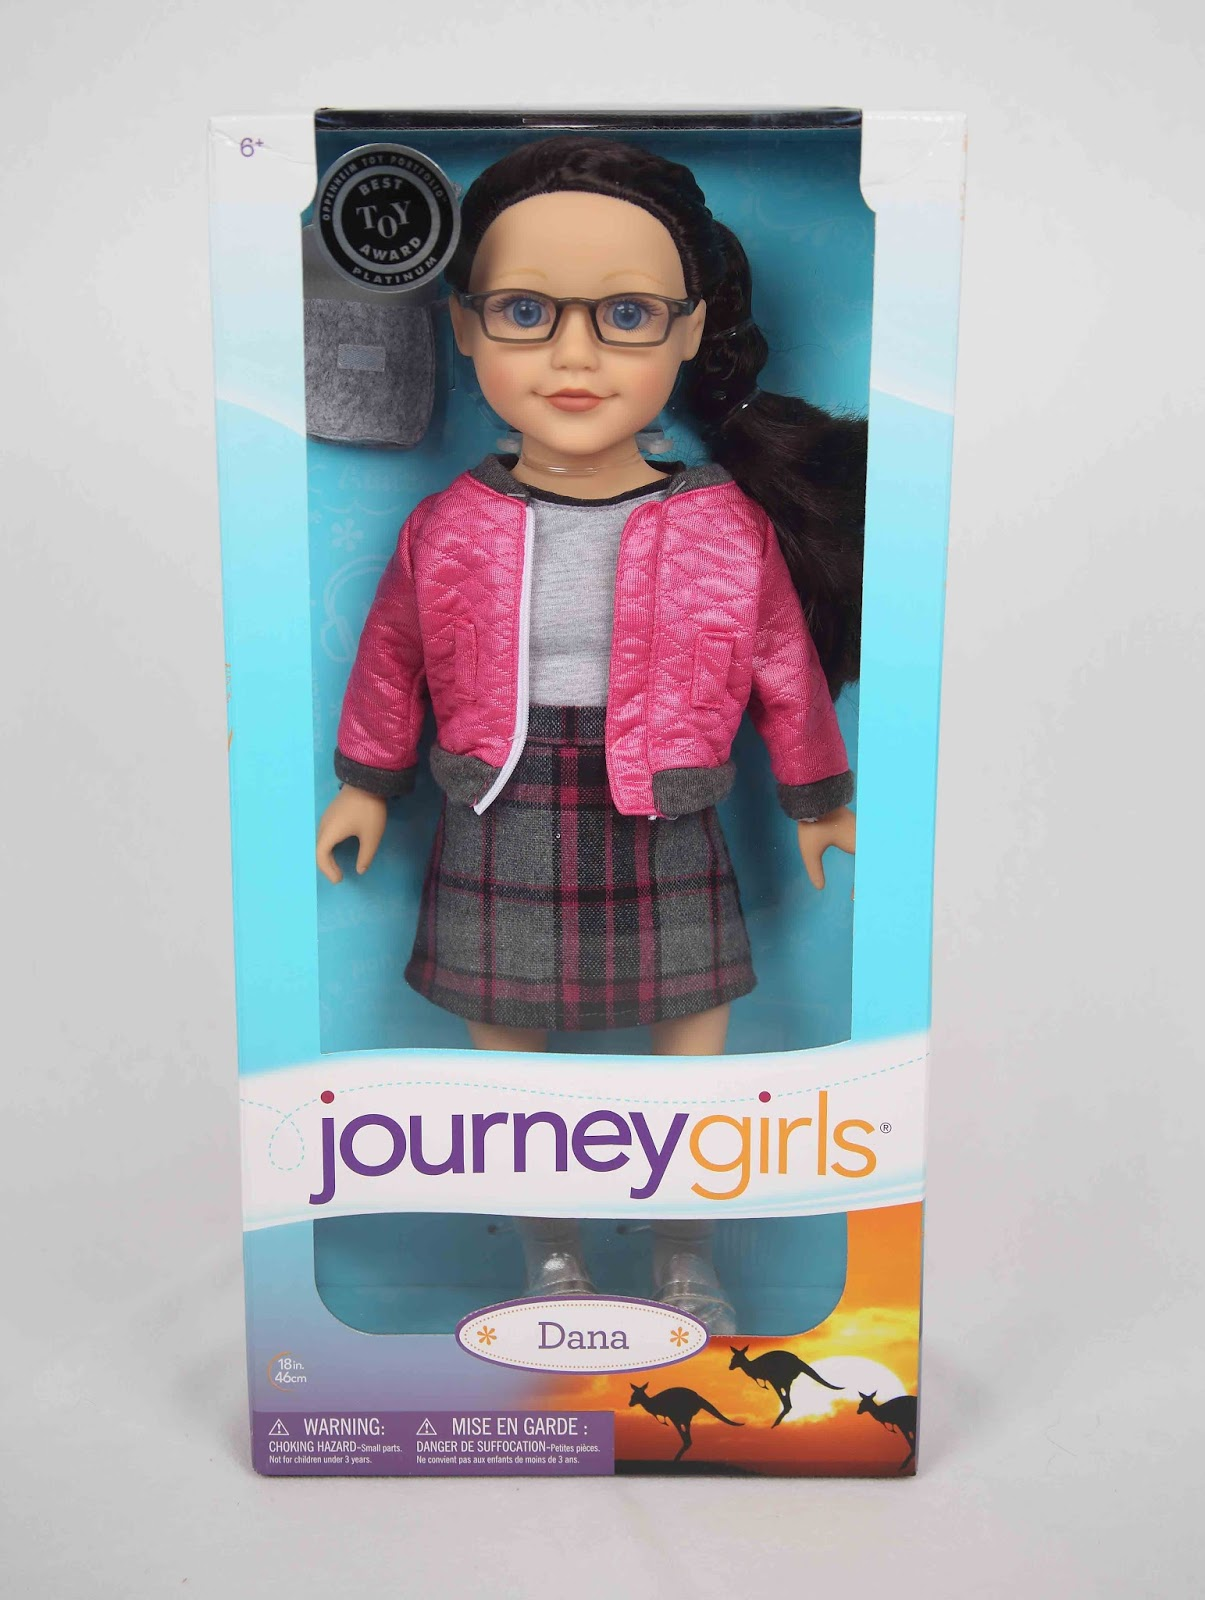 My Journey Girls Dolls Adventures: New Journey Girl Outfits